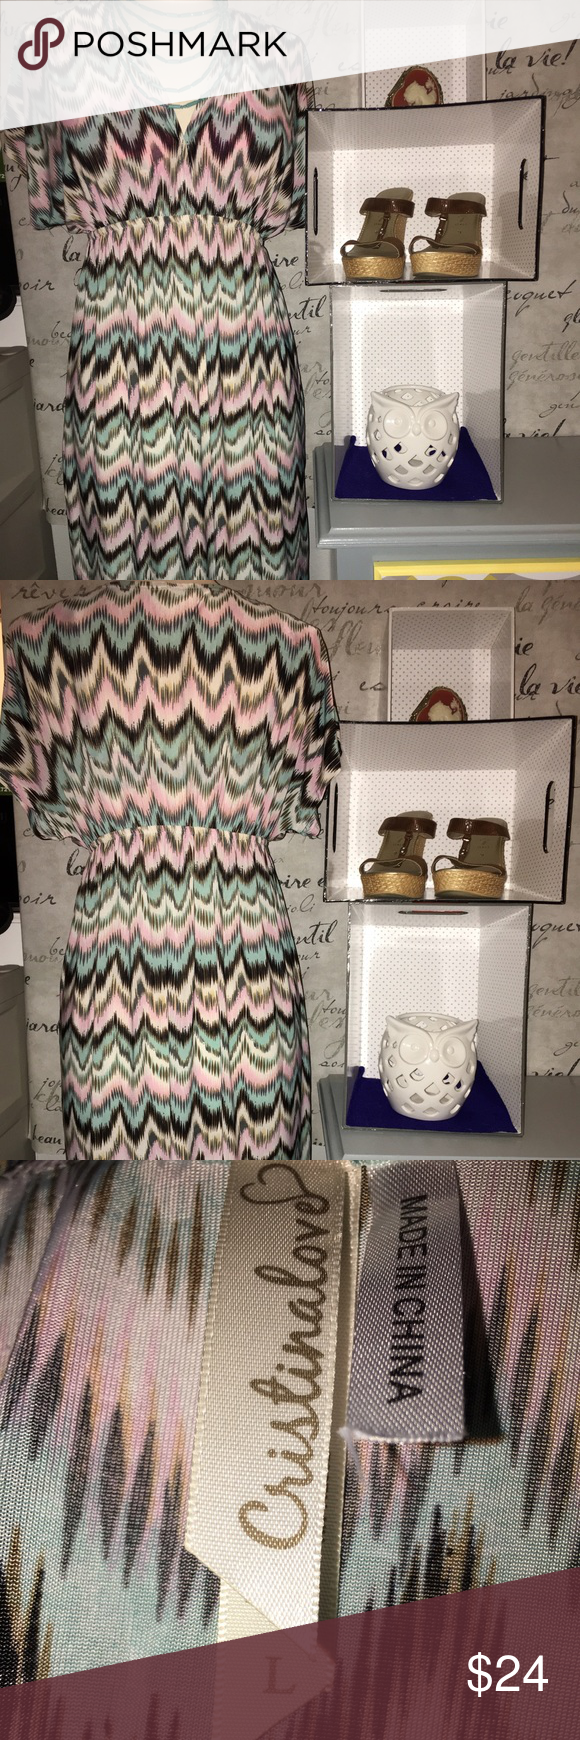 **Last price drop** multicolored chevron dress. Adorable and funky! It depends on how you want to accessorize it. I sold another one of these a few weeks ago and it was very popular! This dress won't last long. 😊✨ Cristinalove Dresses Midi